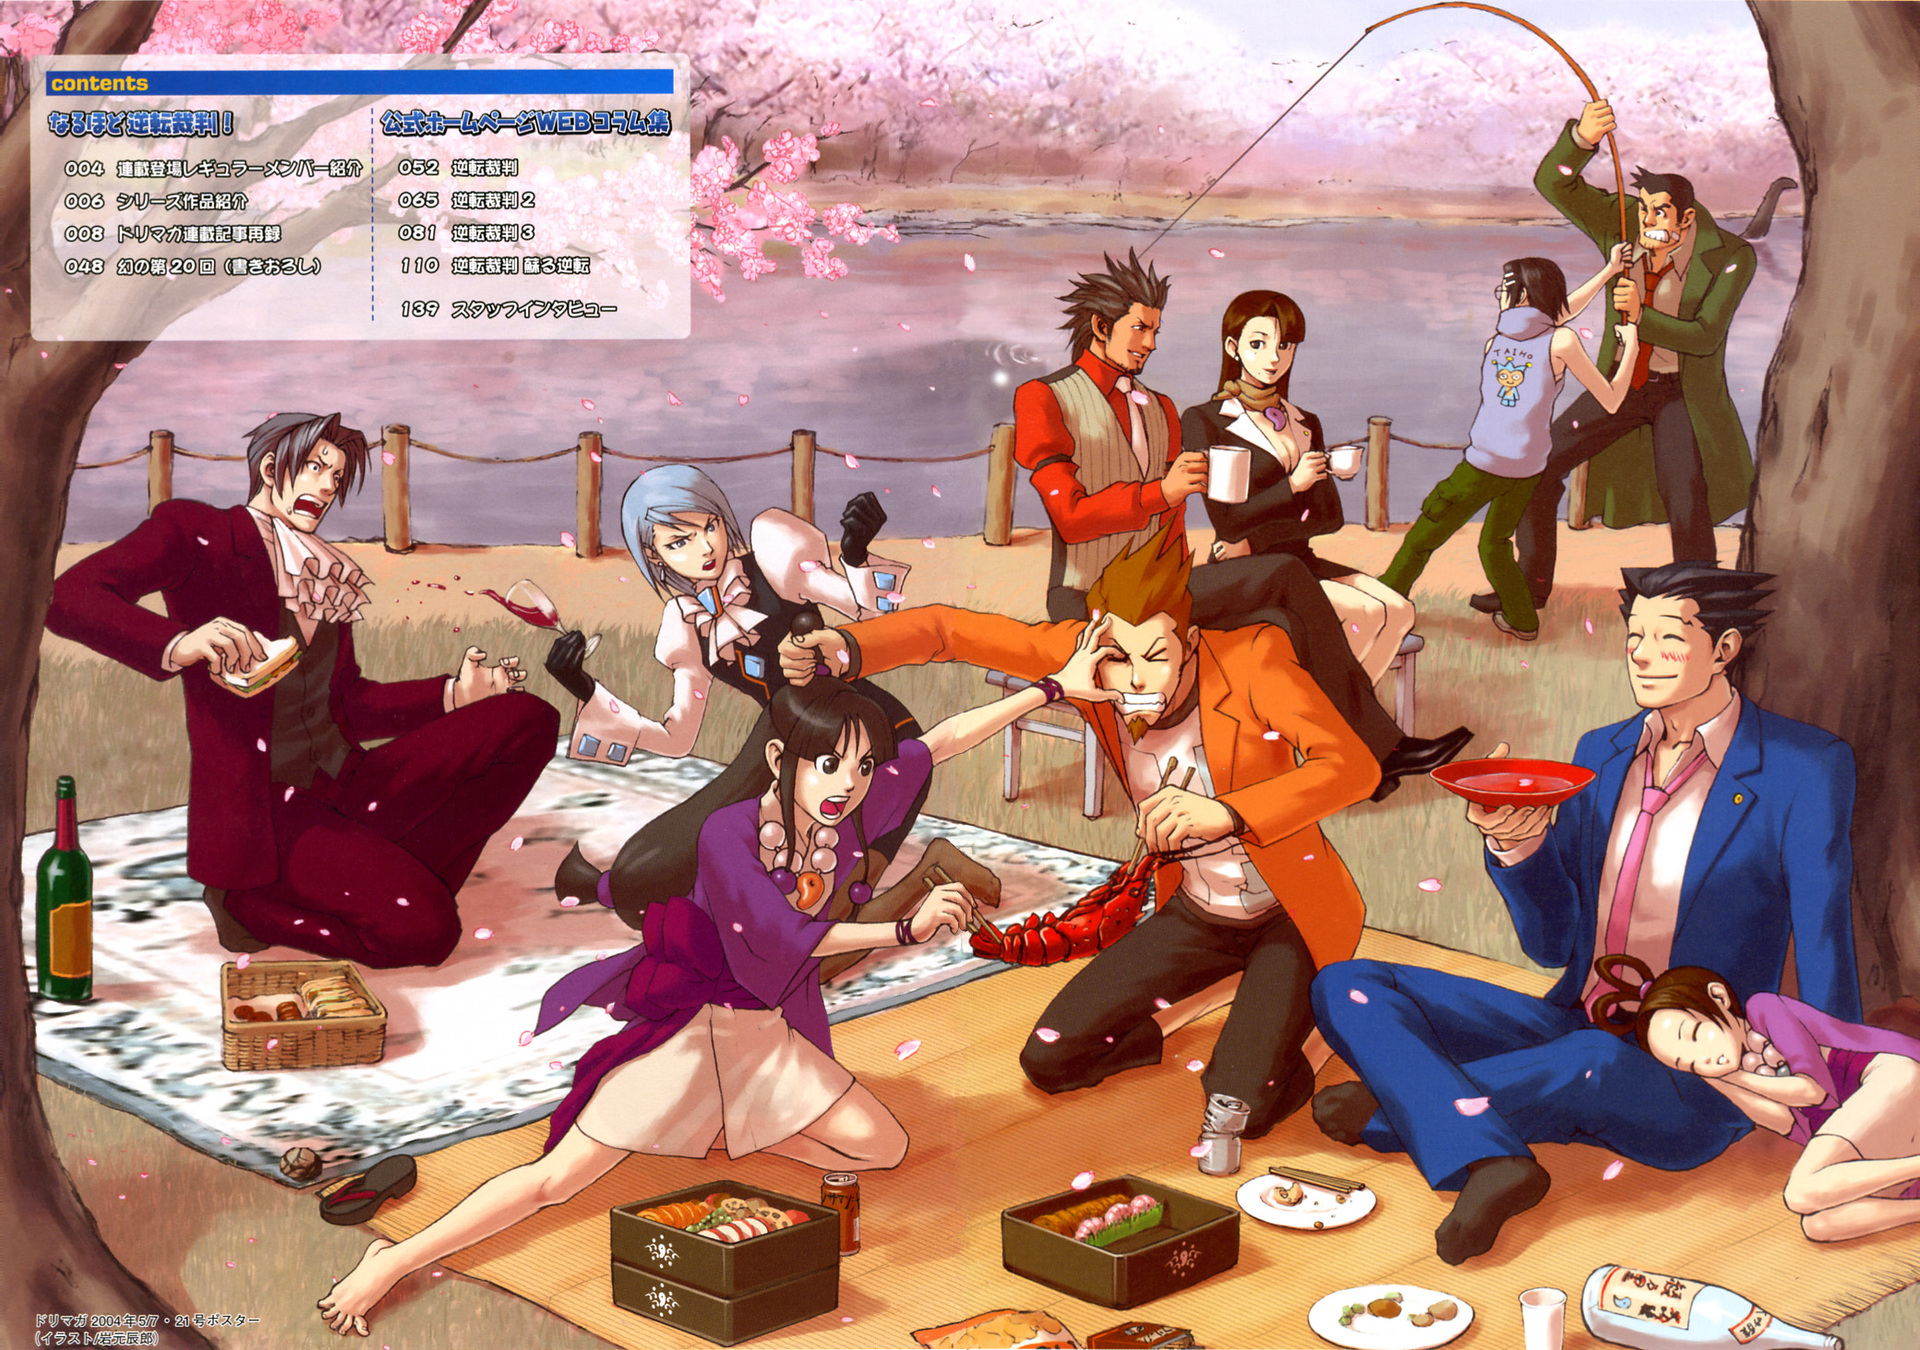 Phoenix Wright Images Picnic HD Wallpaper And Background Photos